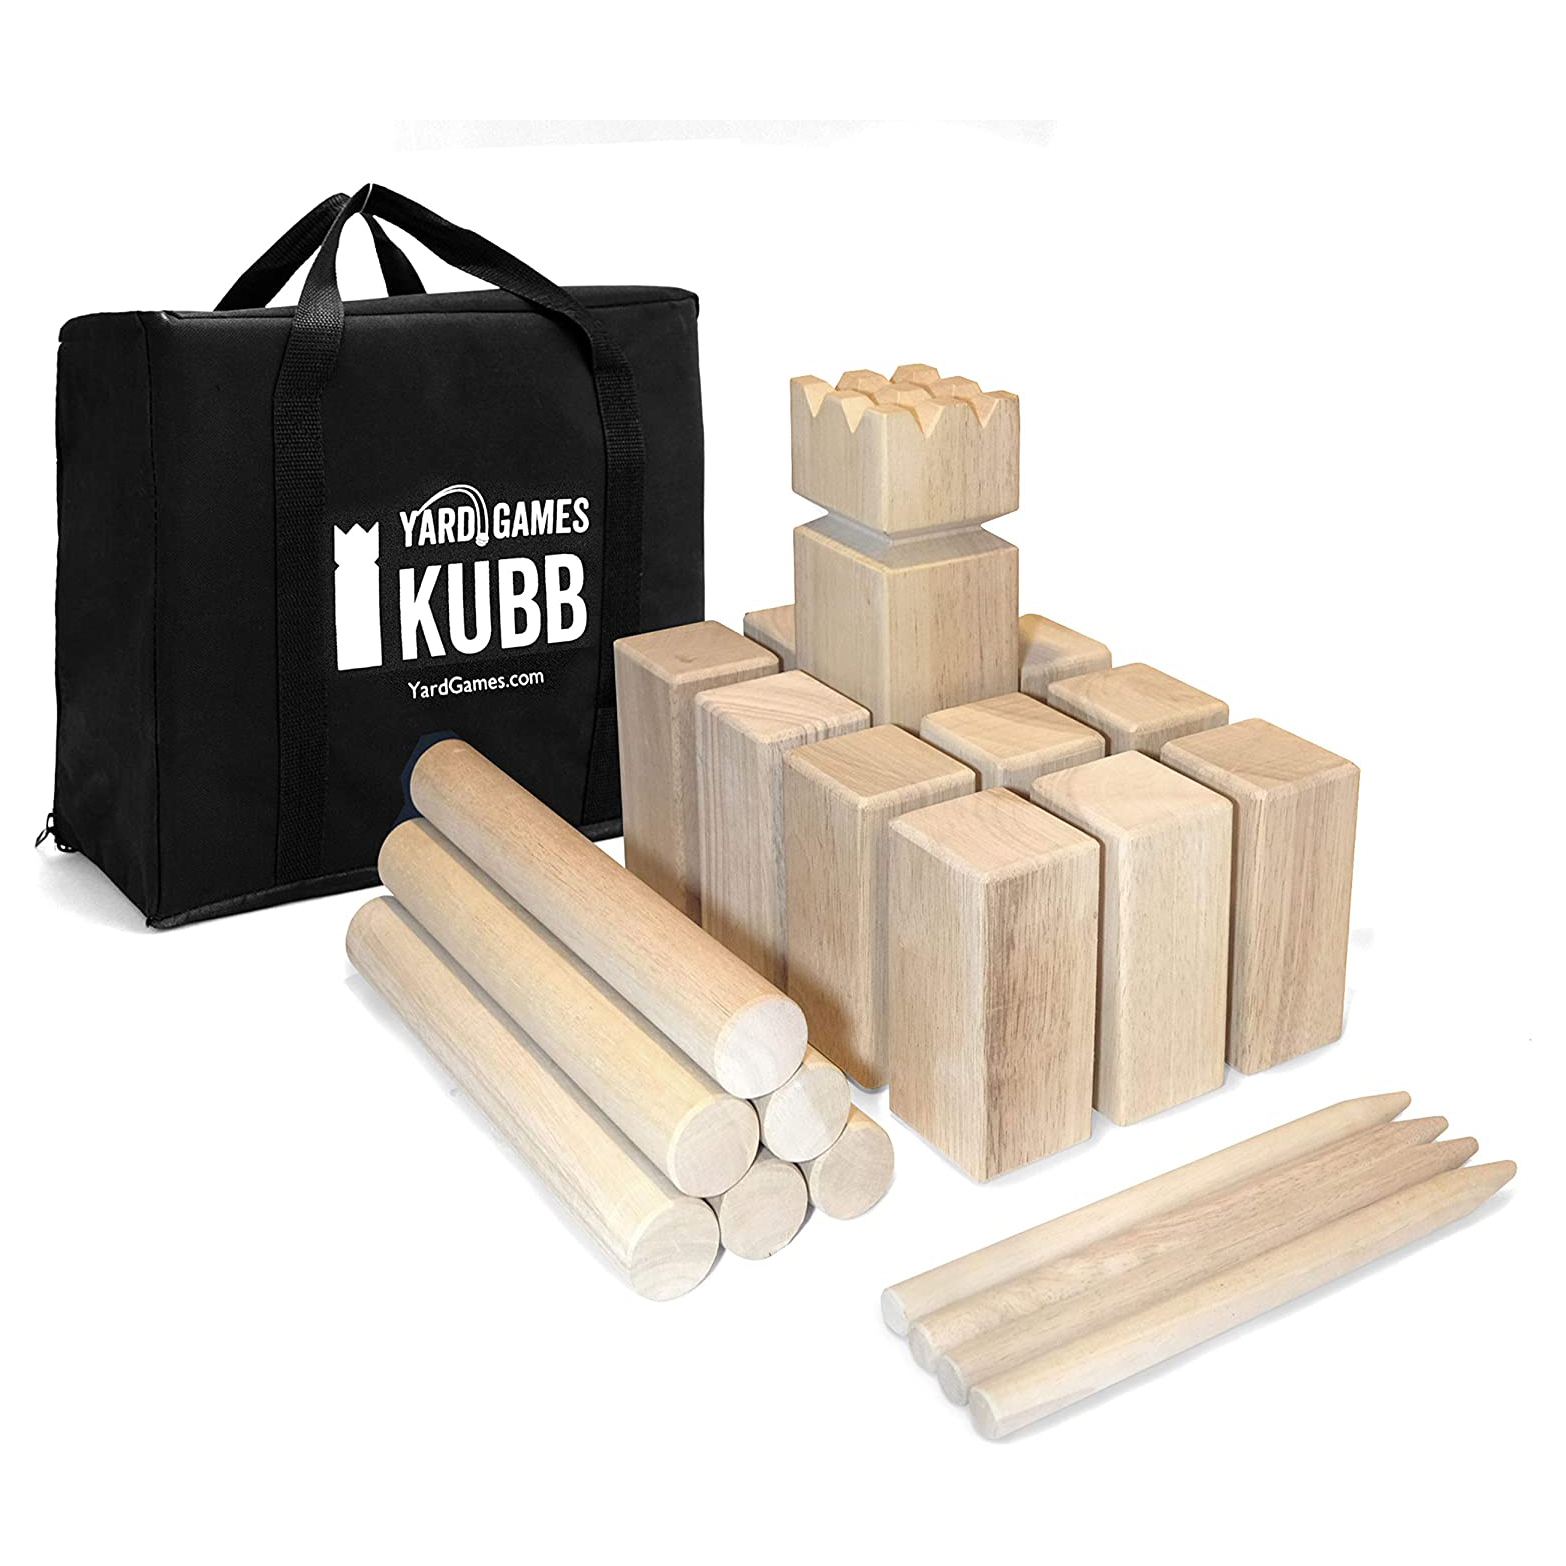 Best gifts for boyfriends - For the Casual Hanger: Kubb